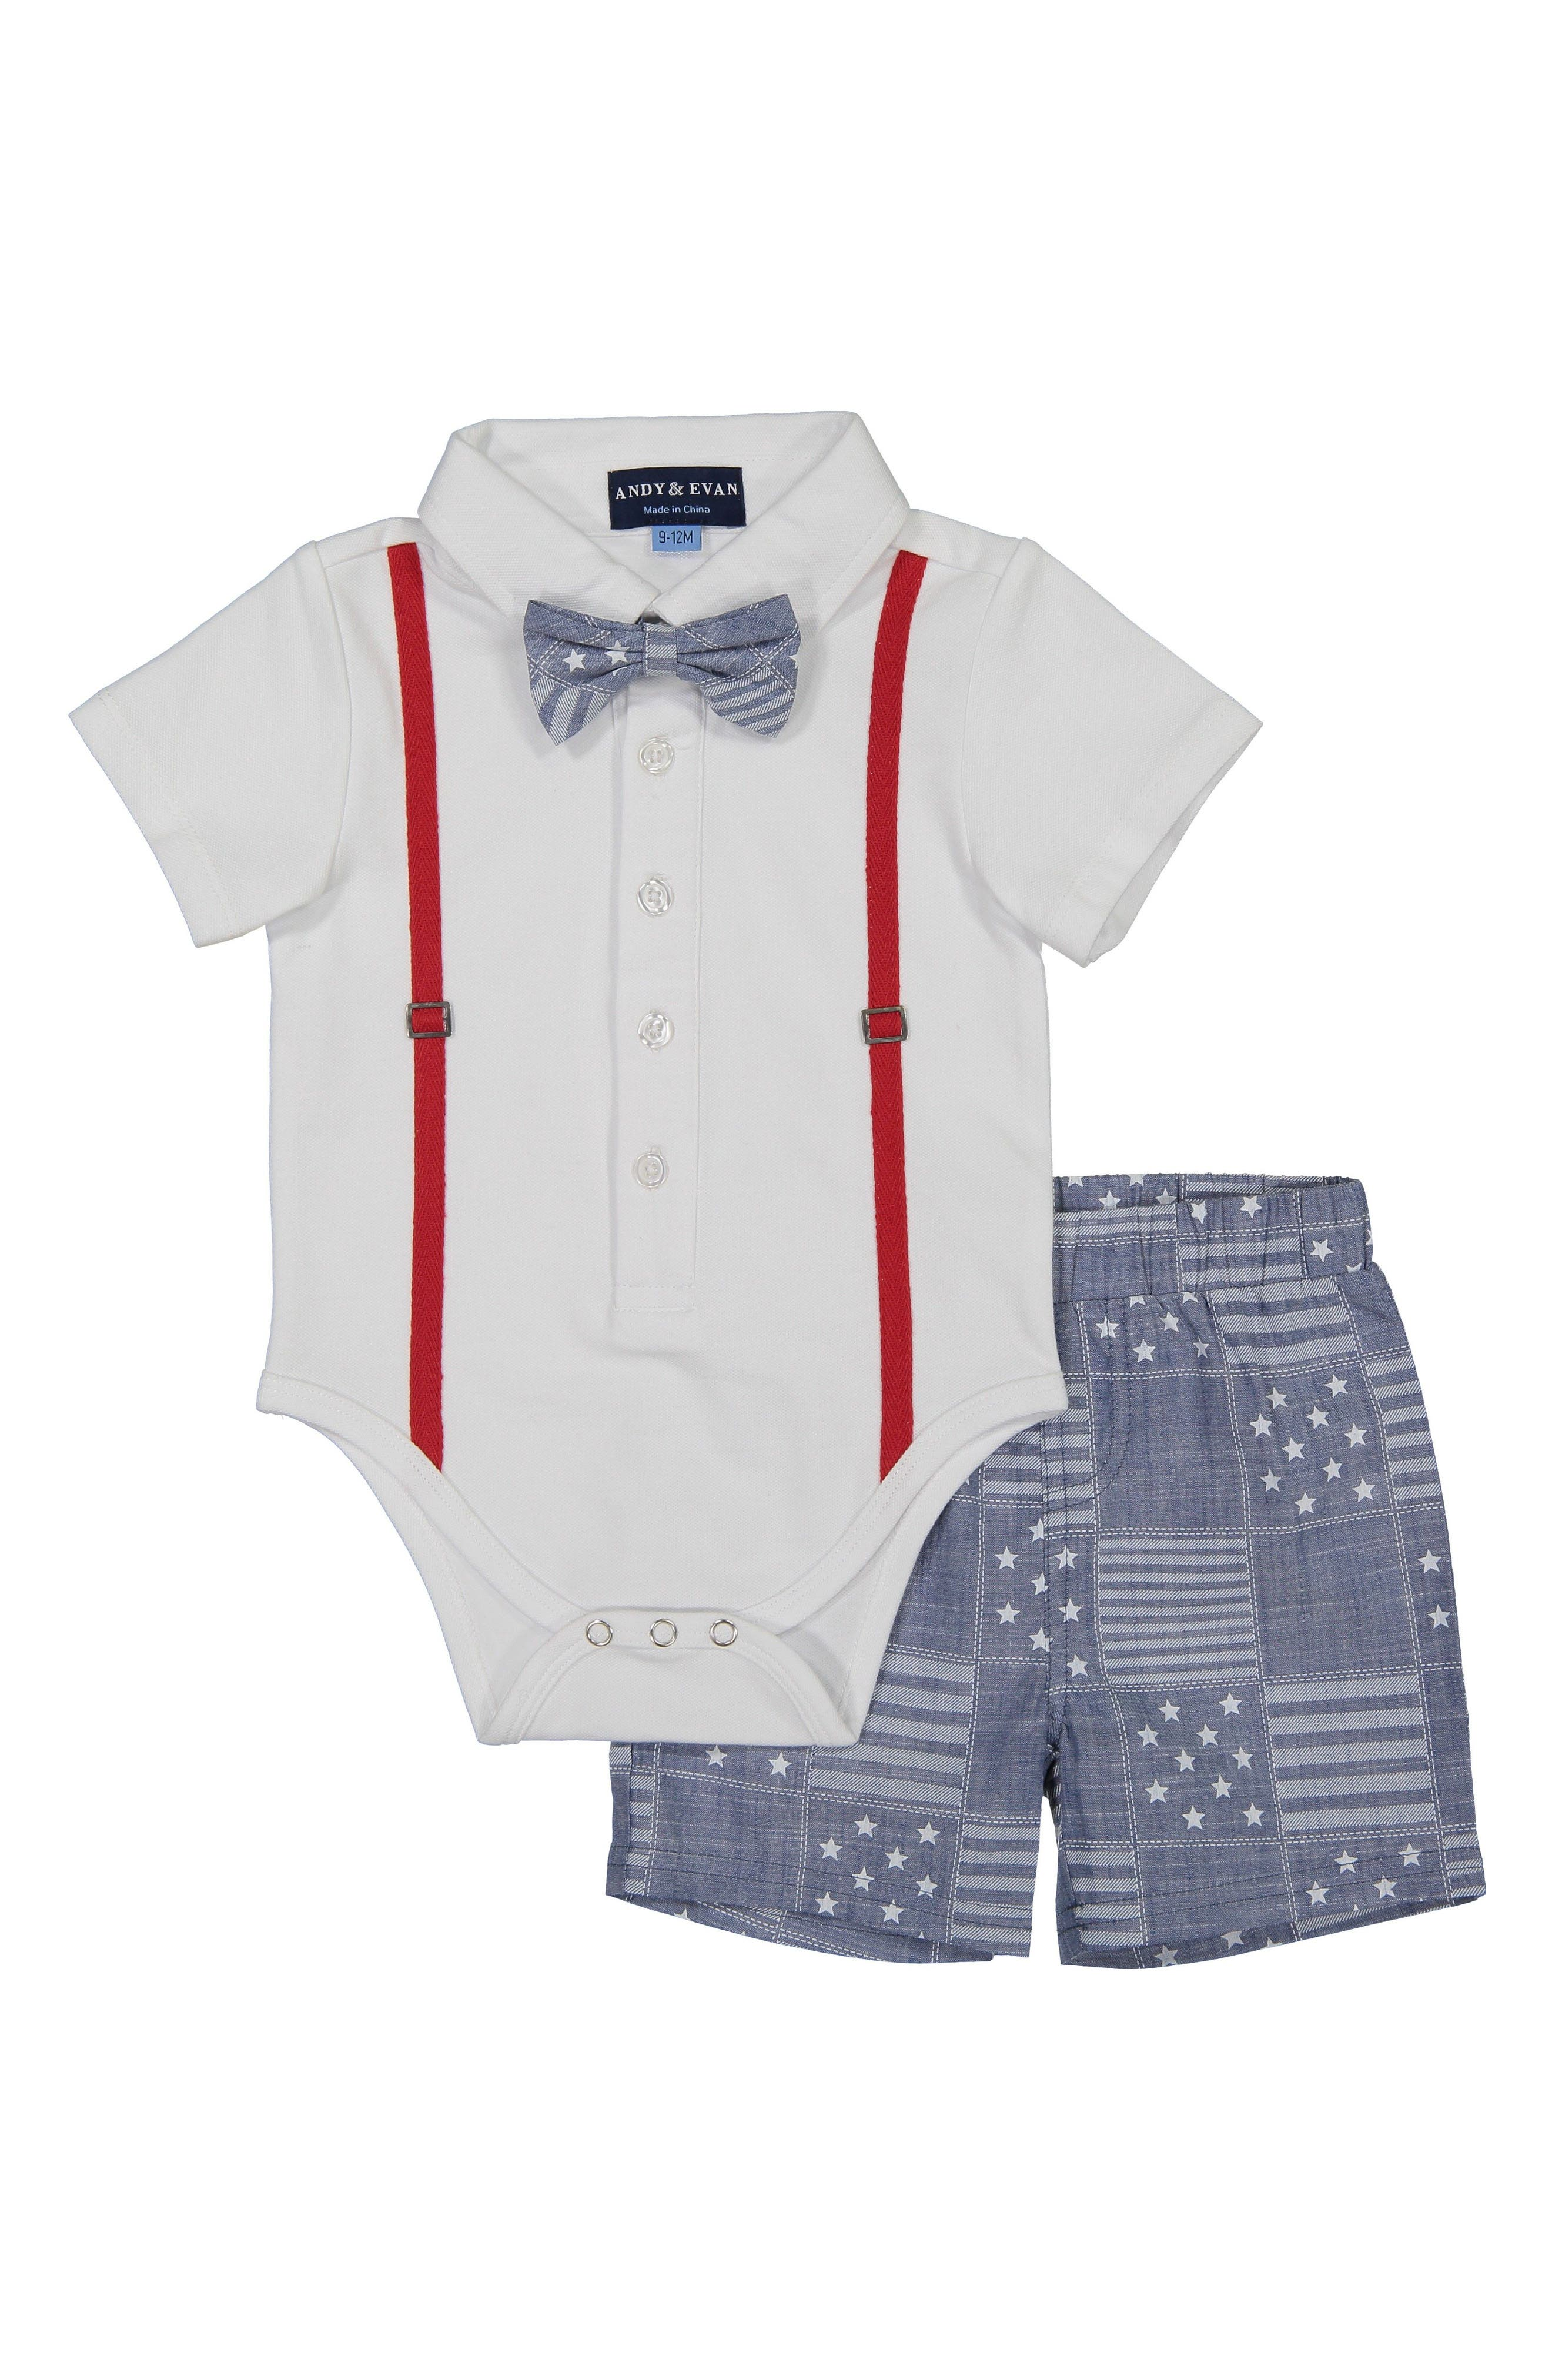 Andy & Evan All-American Polo, Bow Tie & Shorts Set (Baby Boys)